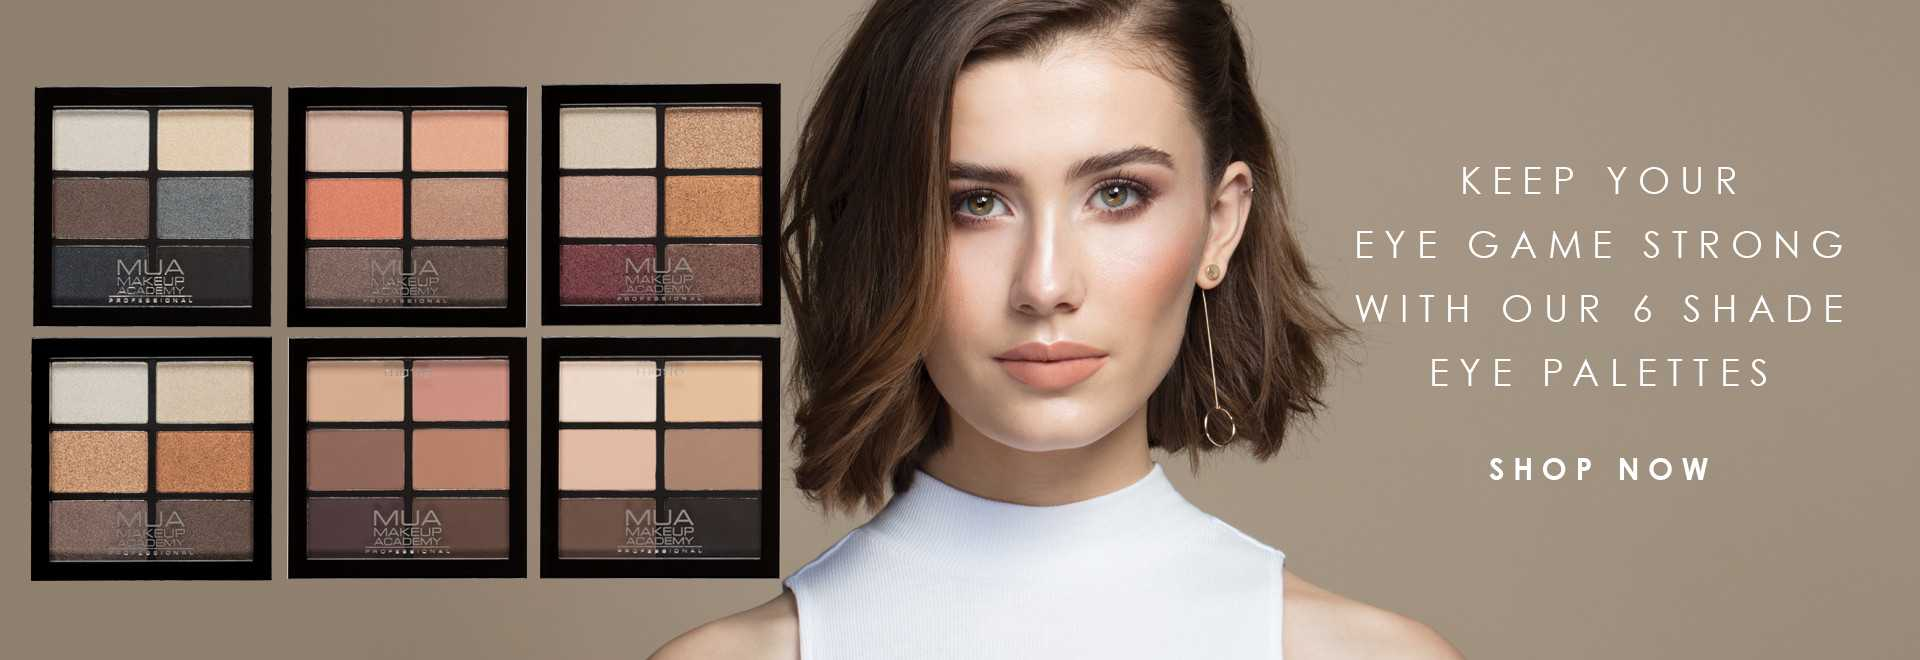 MUA Professional 6 Shade Eyeshadow Palette